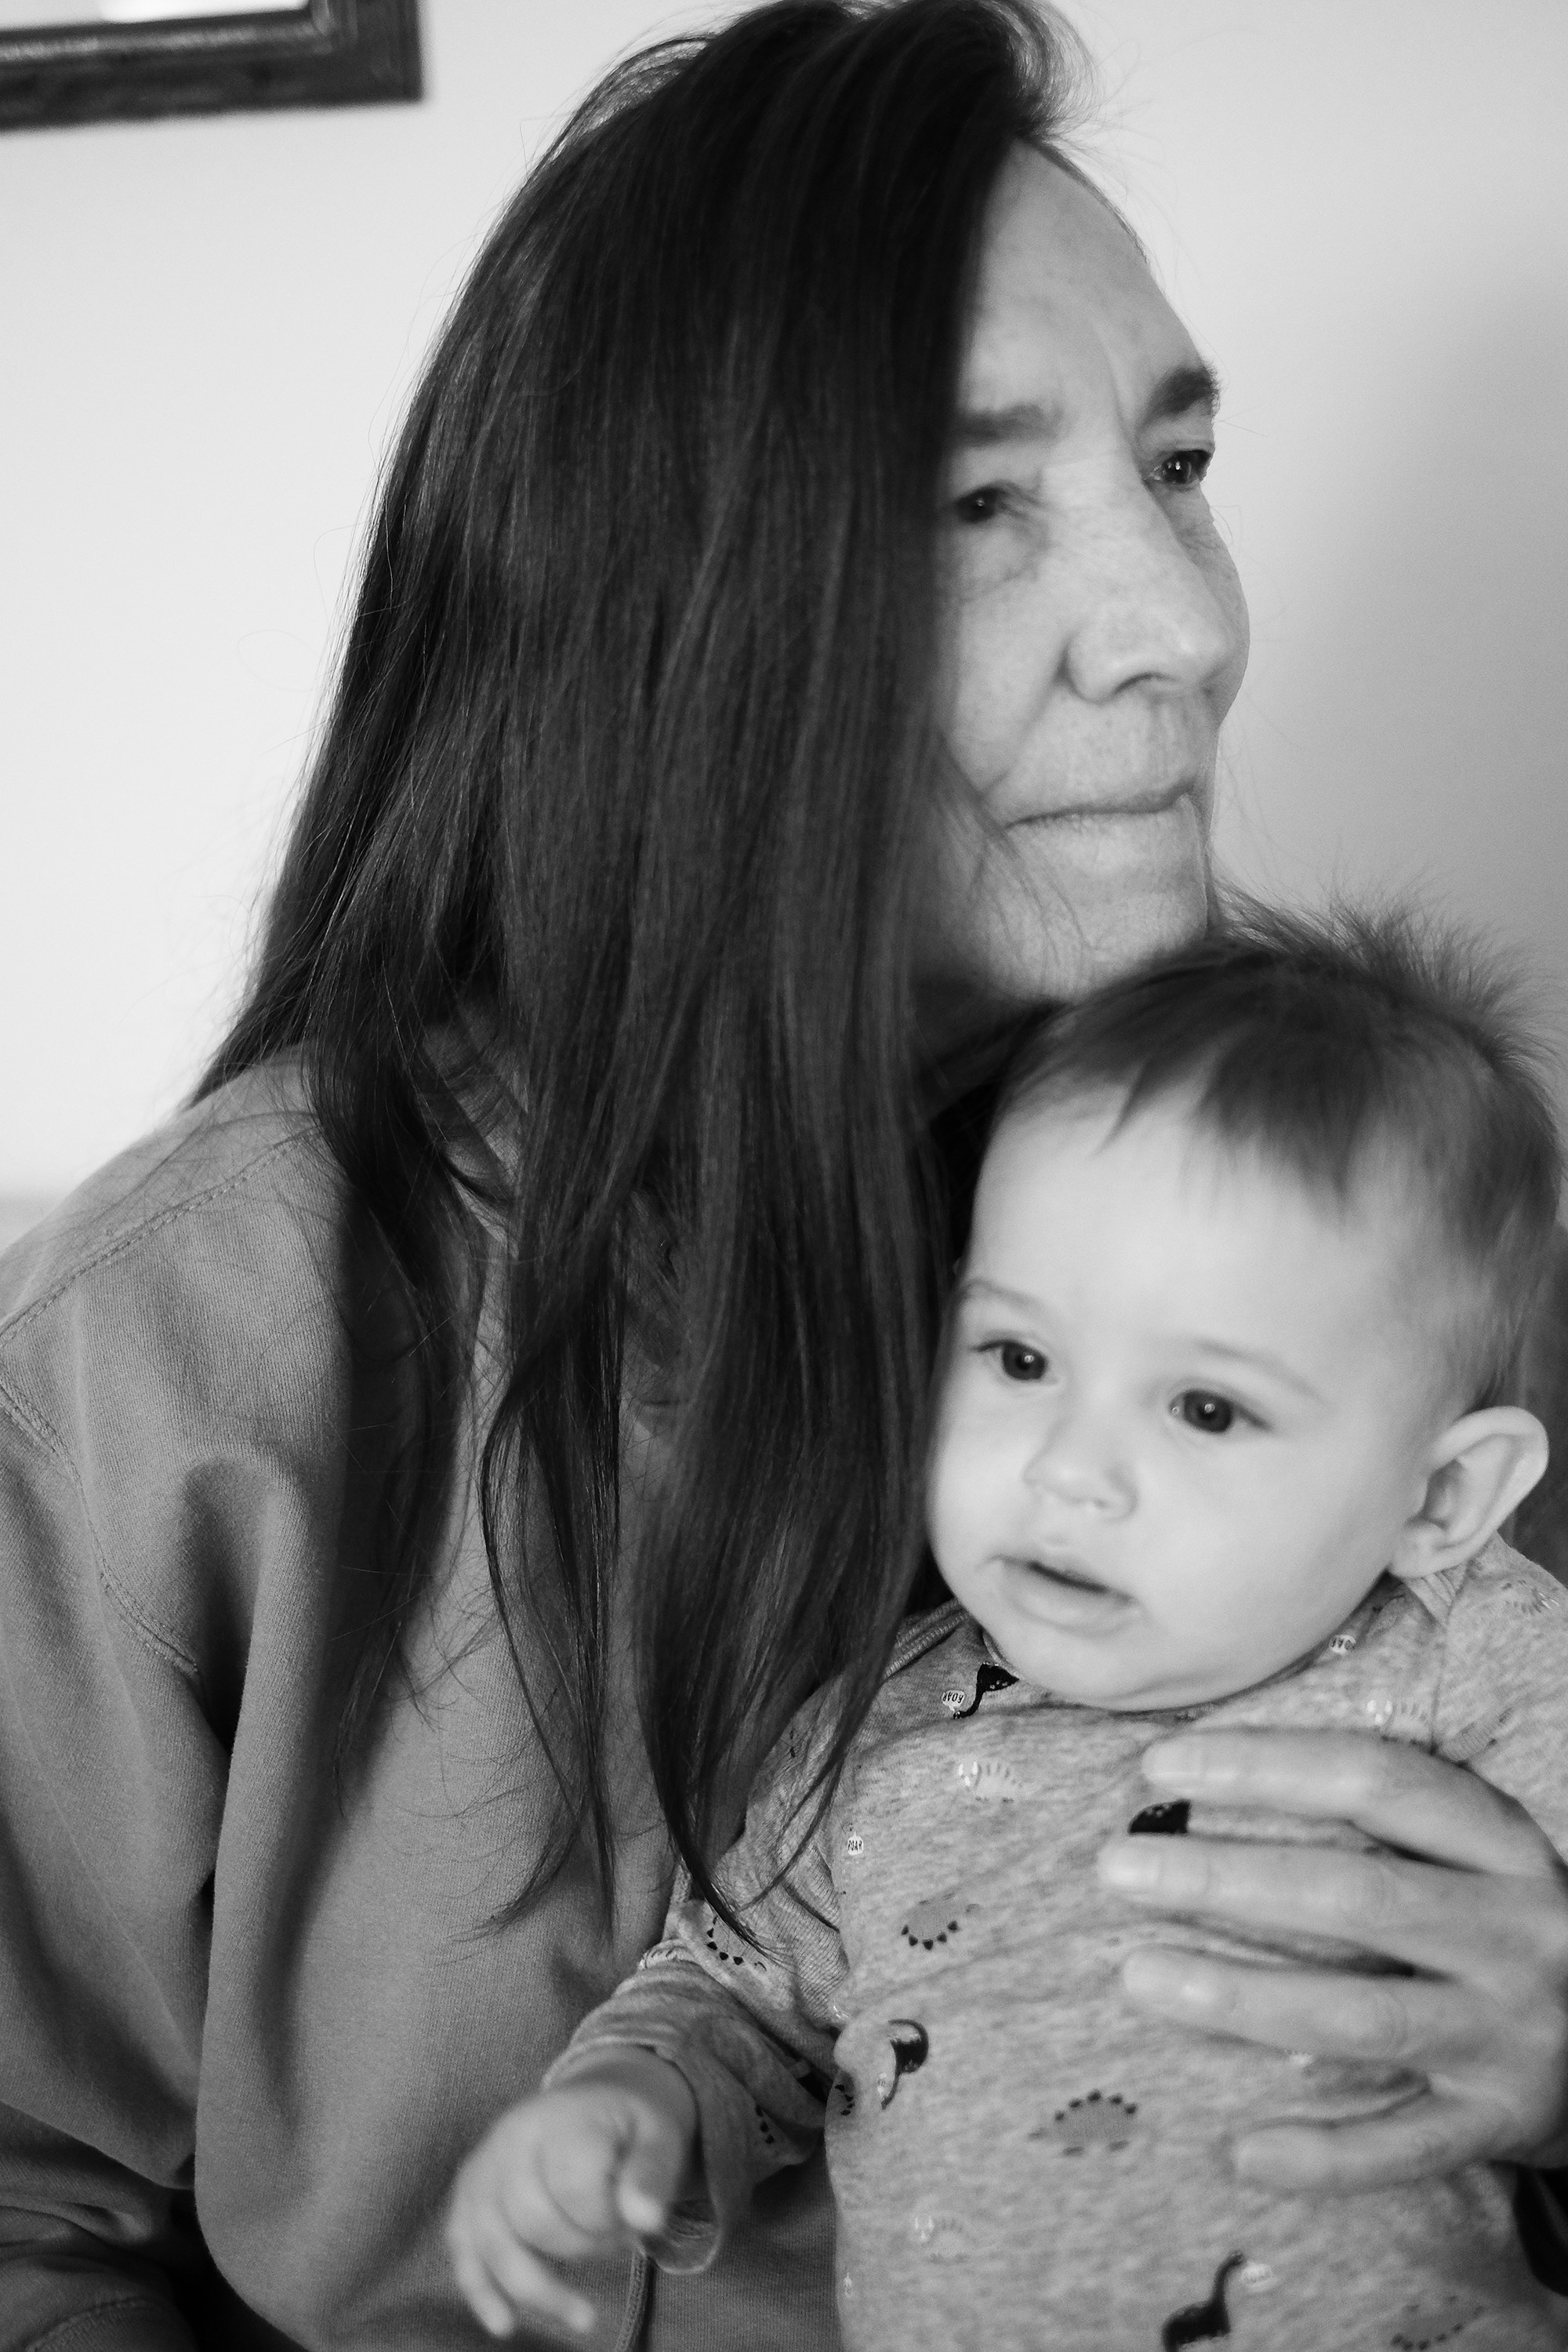 An older woman holds a toddler with her chin on the child's head